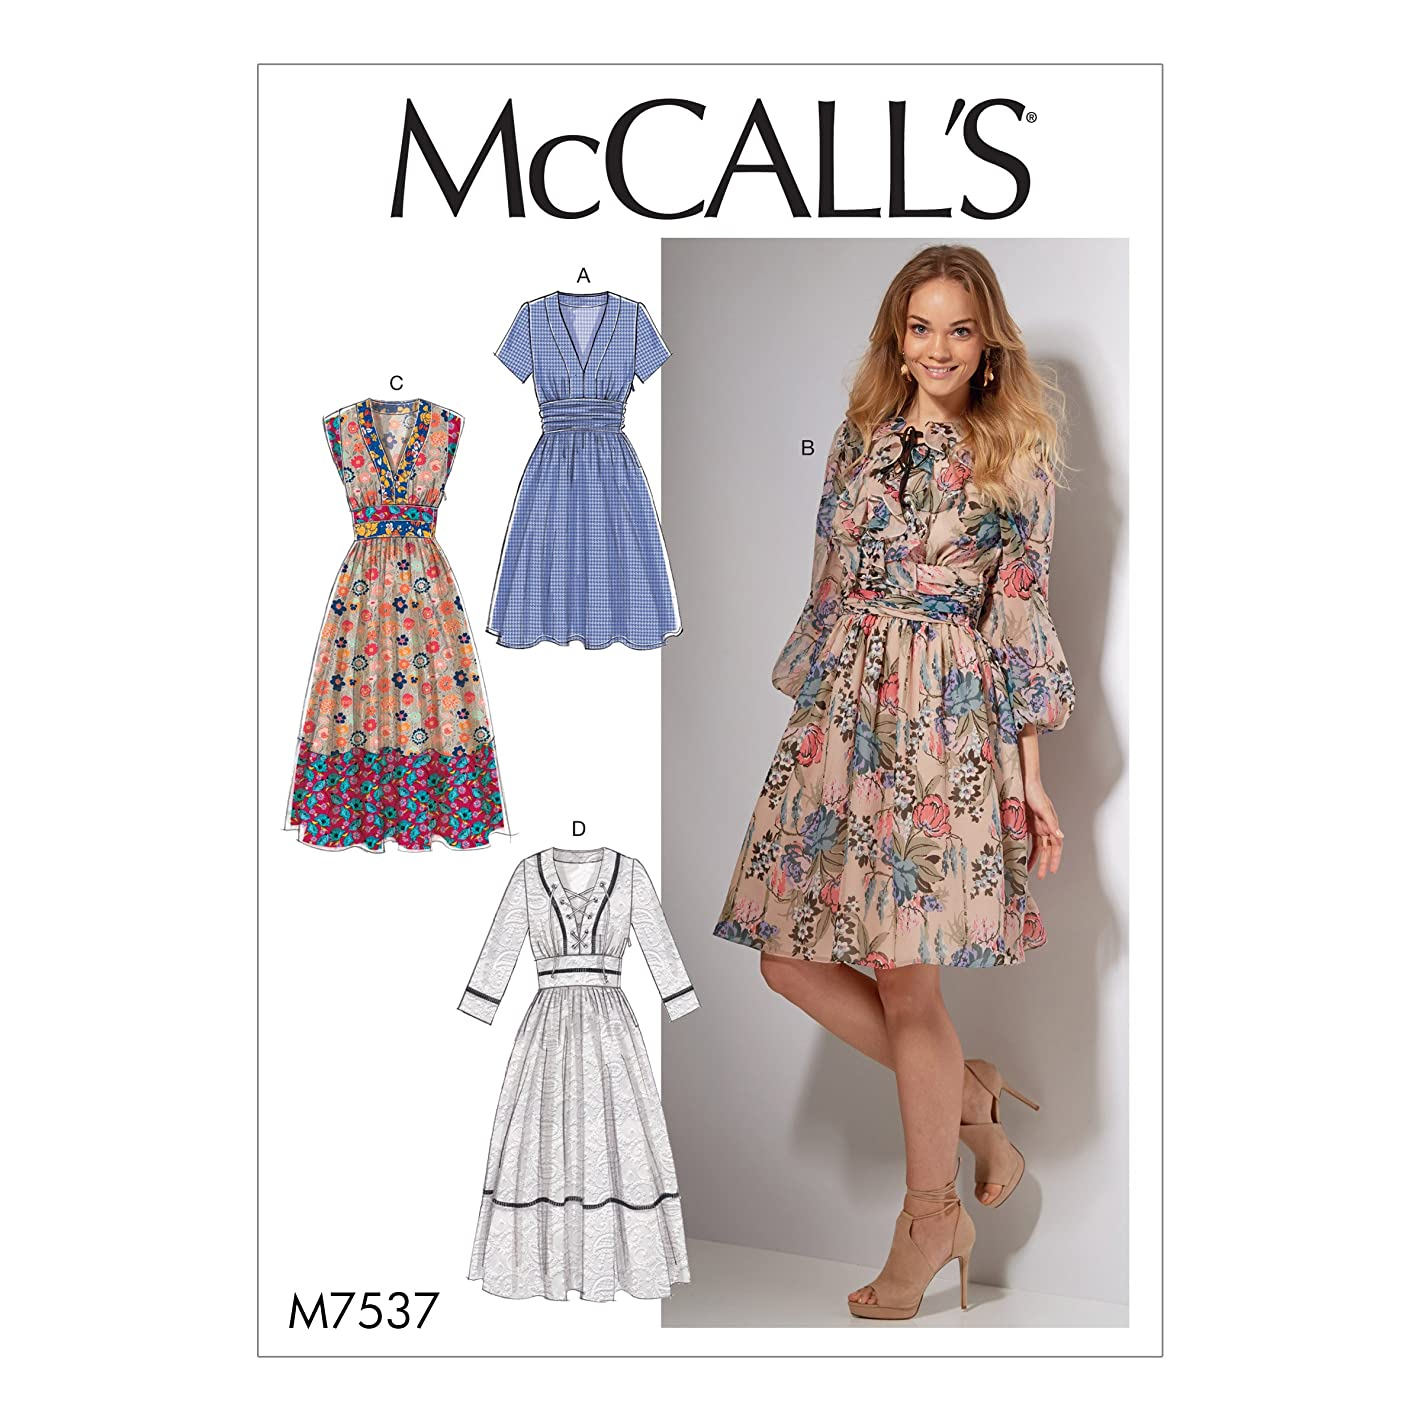 McCall Patterns M7537A50 Banded, Gathered-Waist Dresses Sewing Pattern